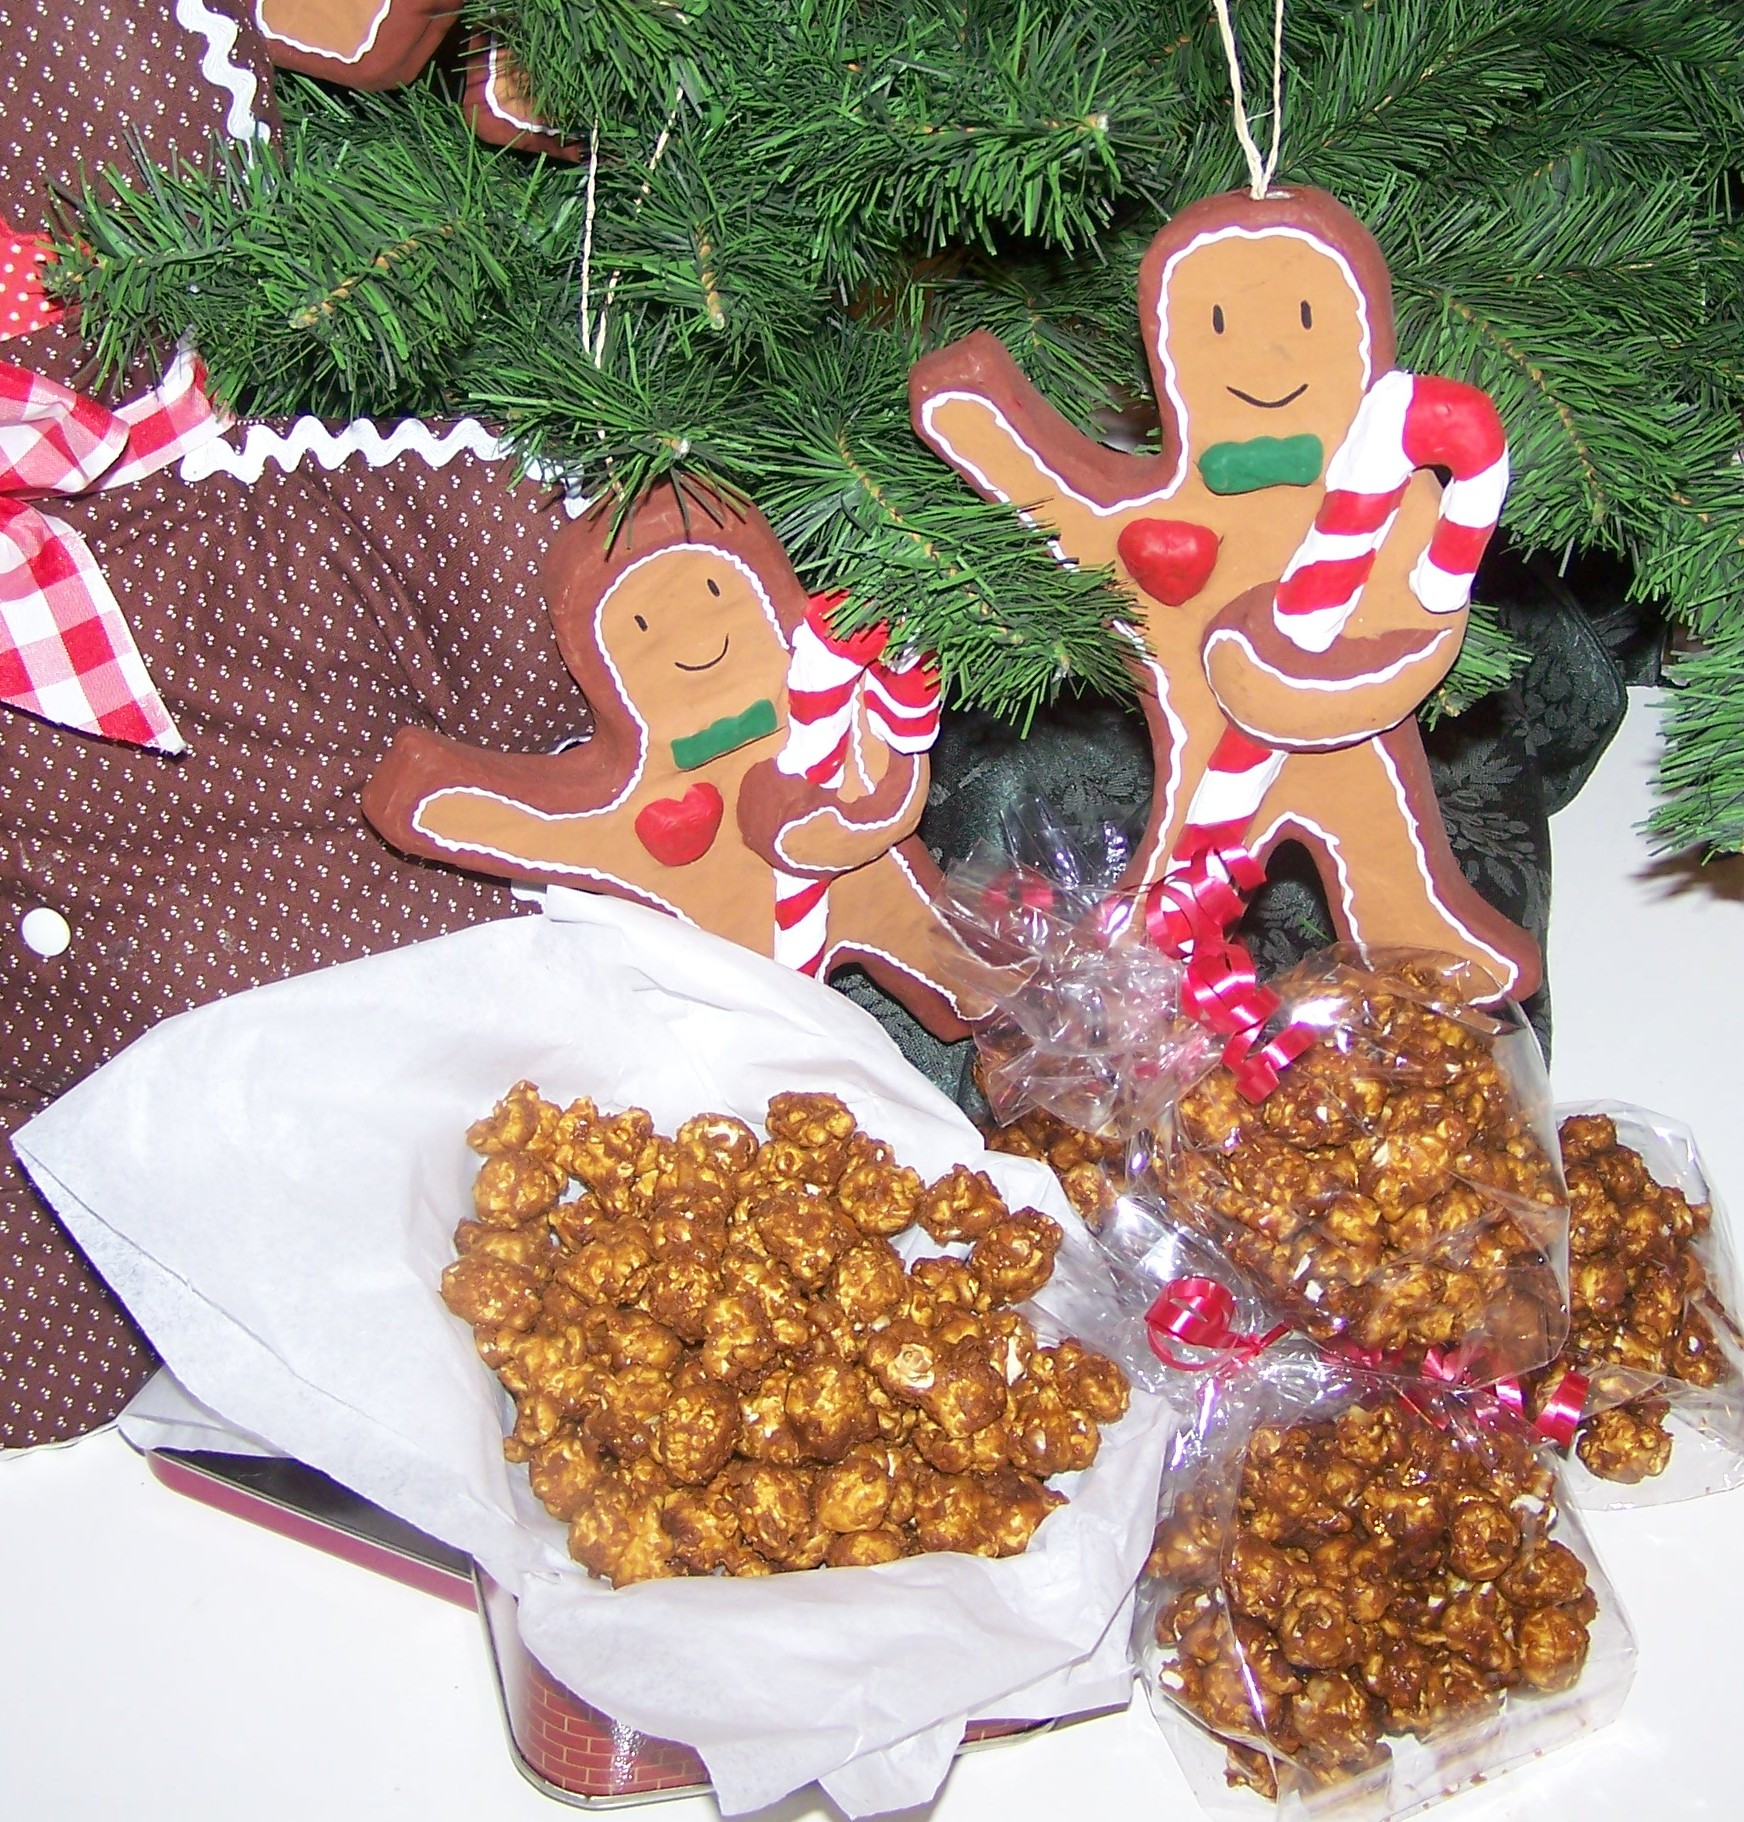 http://eclecticepicurean.ipower.com/Pictures/Candies/gingerbread%20corn.jpg